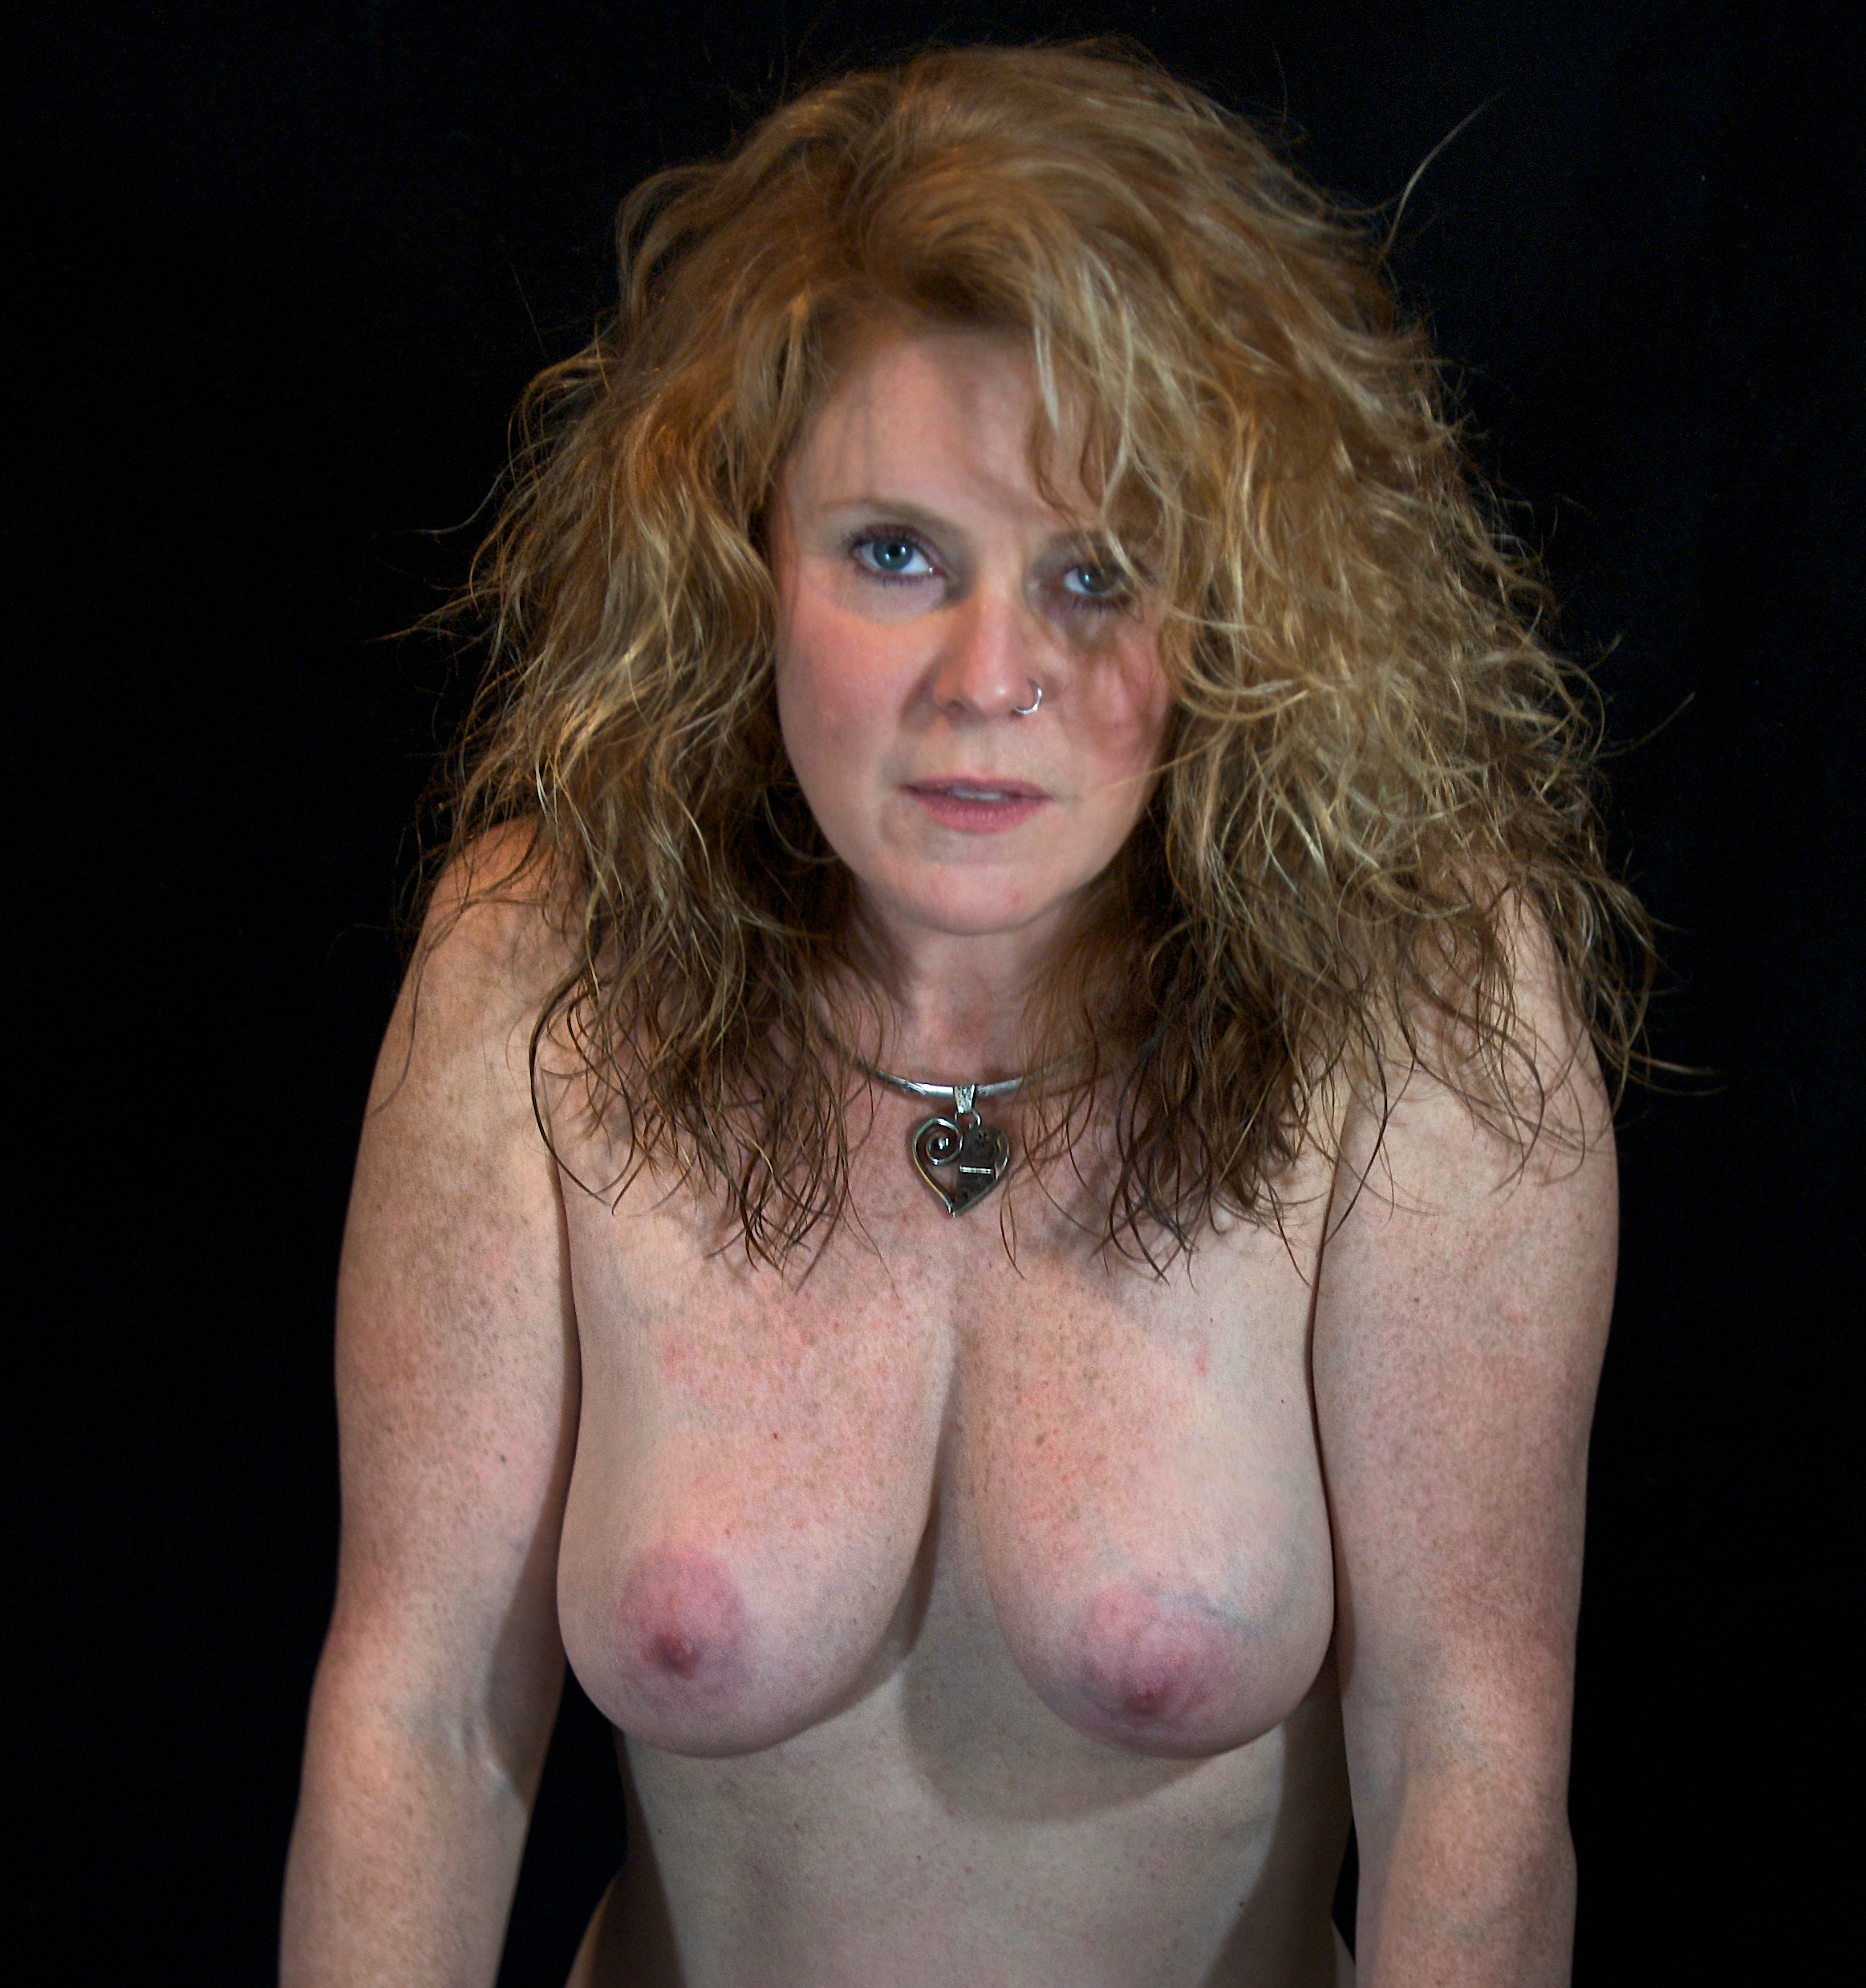 Bare-breasted woman with blue eyes and freckles